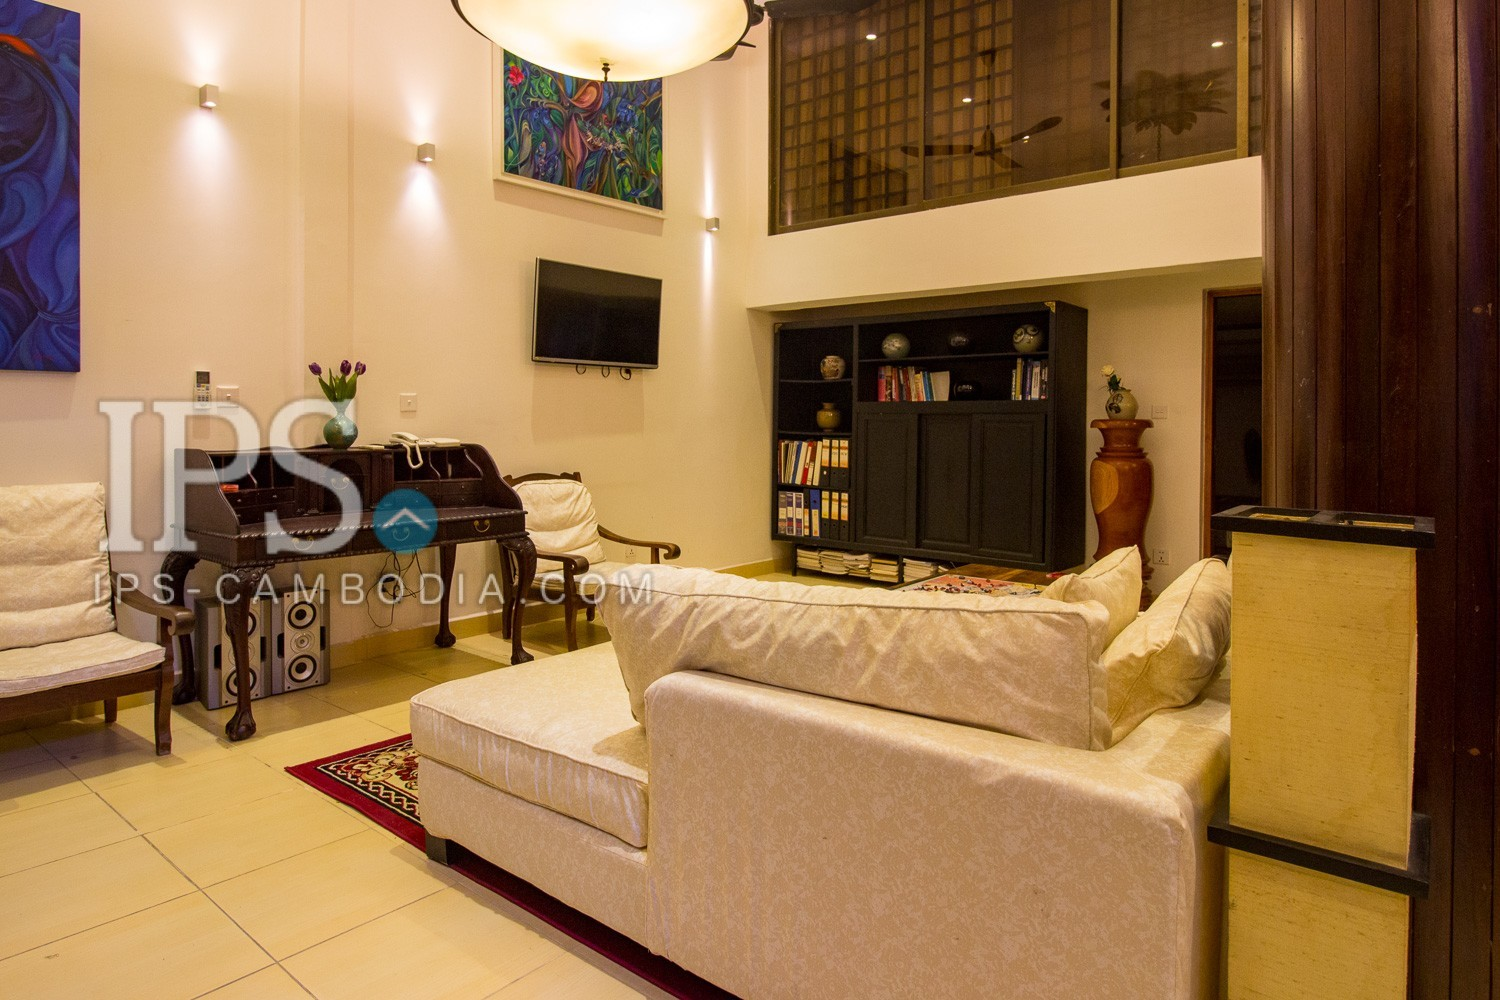 2 Bedroom Apartment For Rent - Toul Svay Prey 1, Phnom Penh